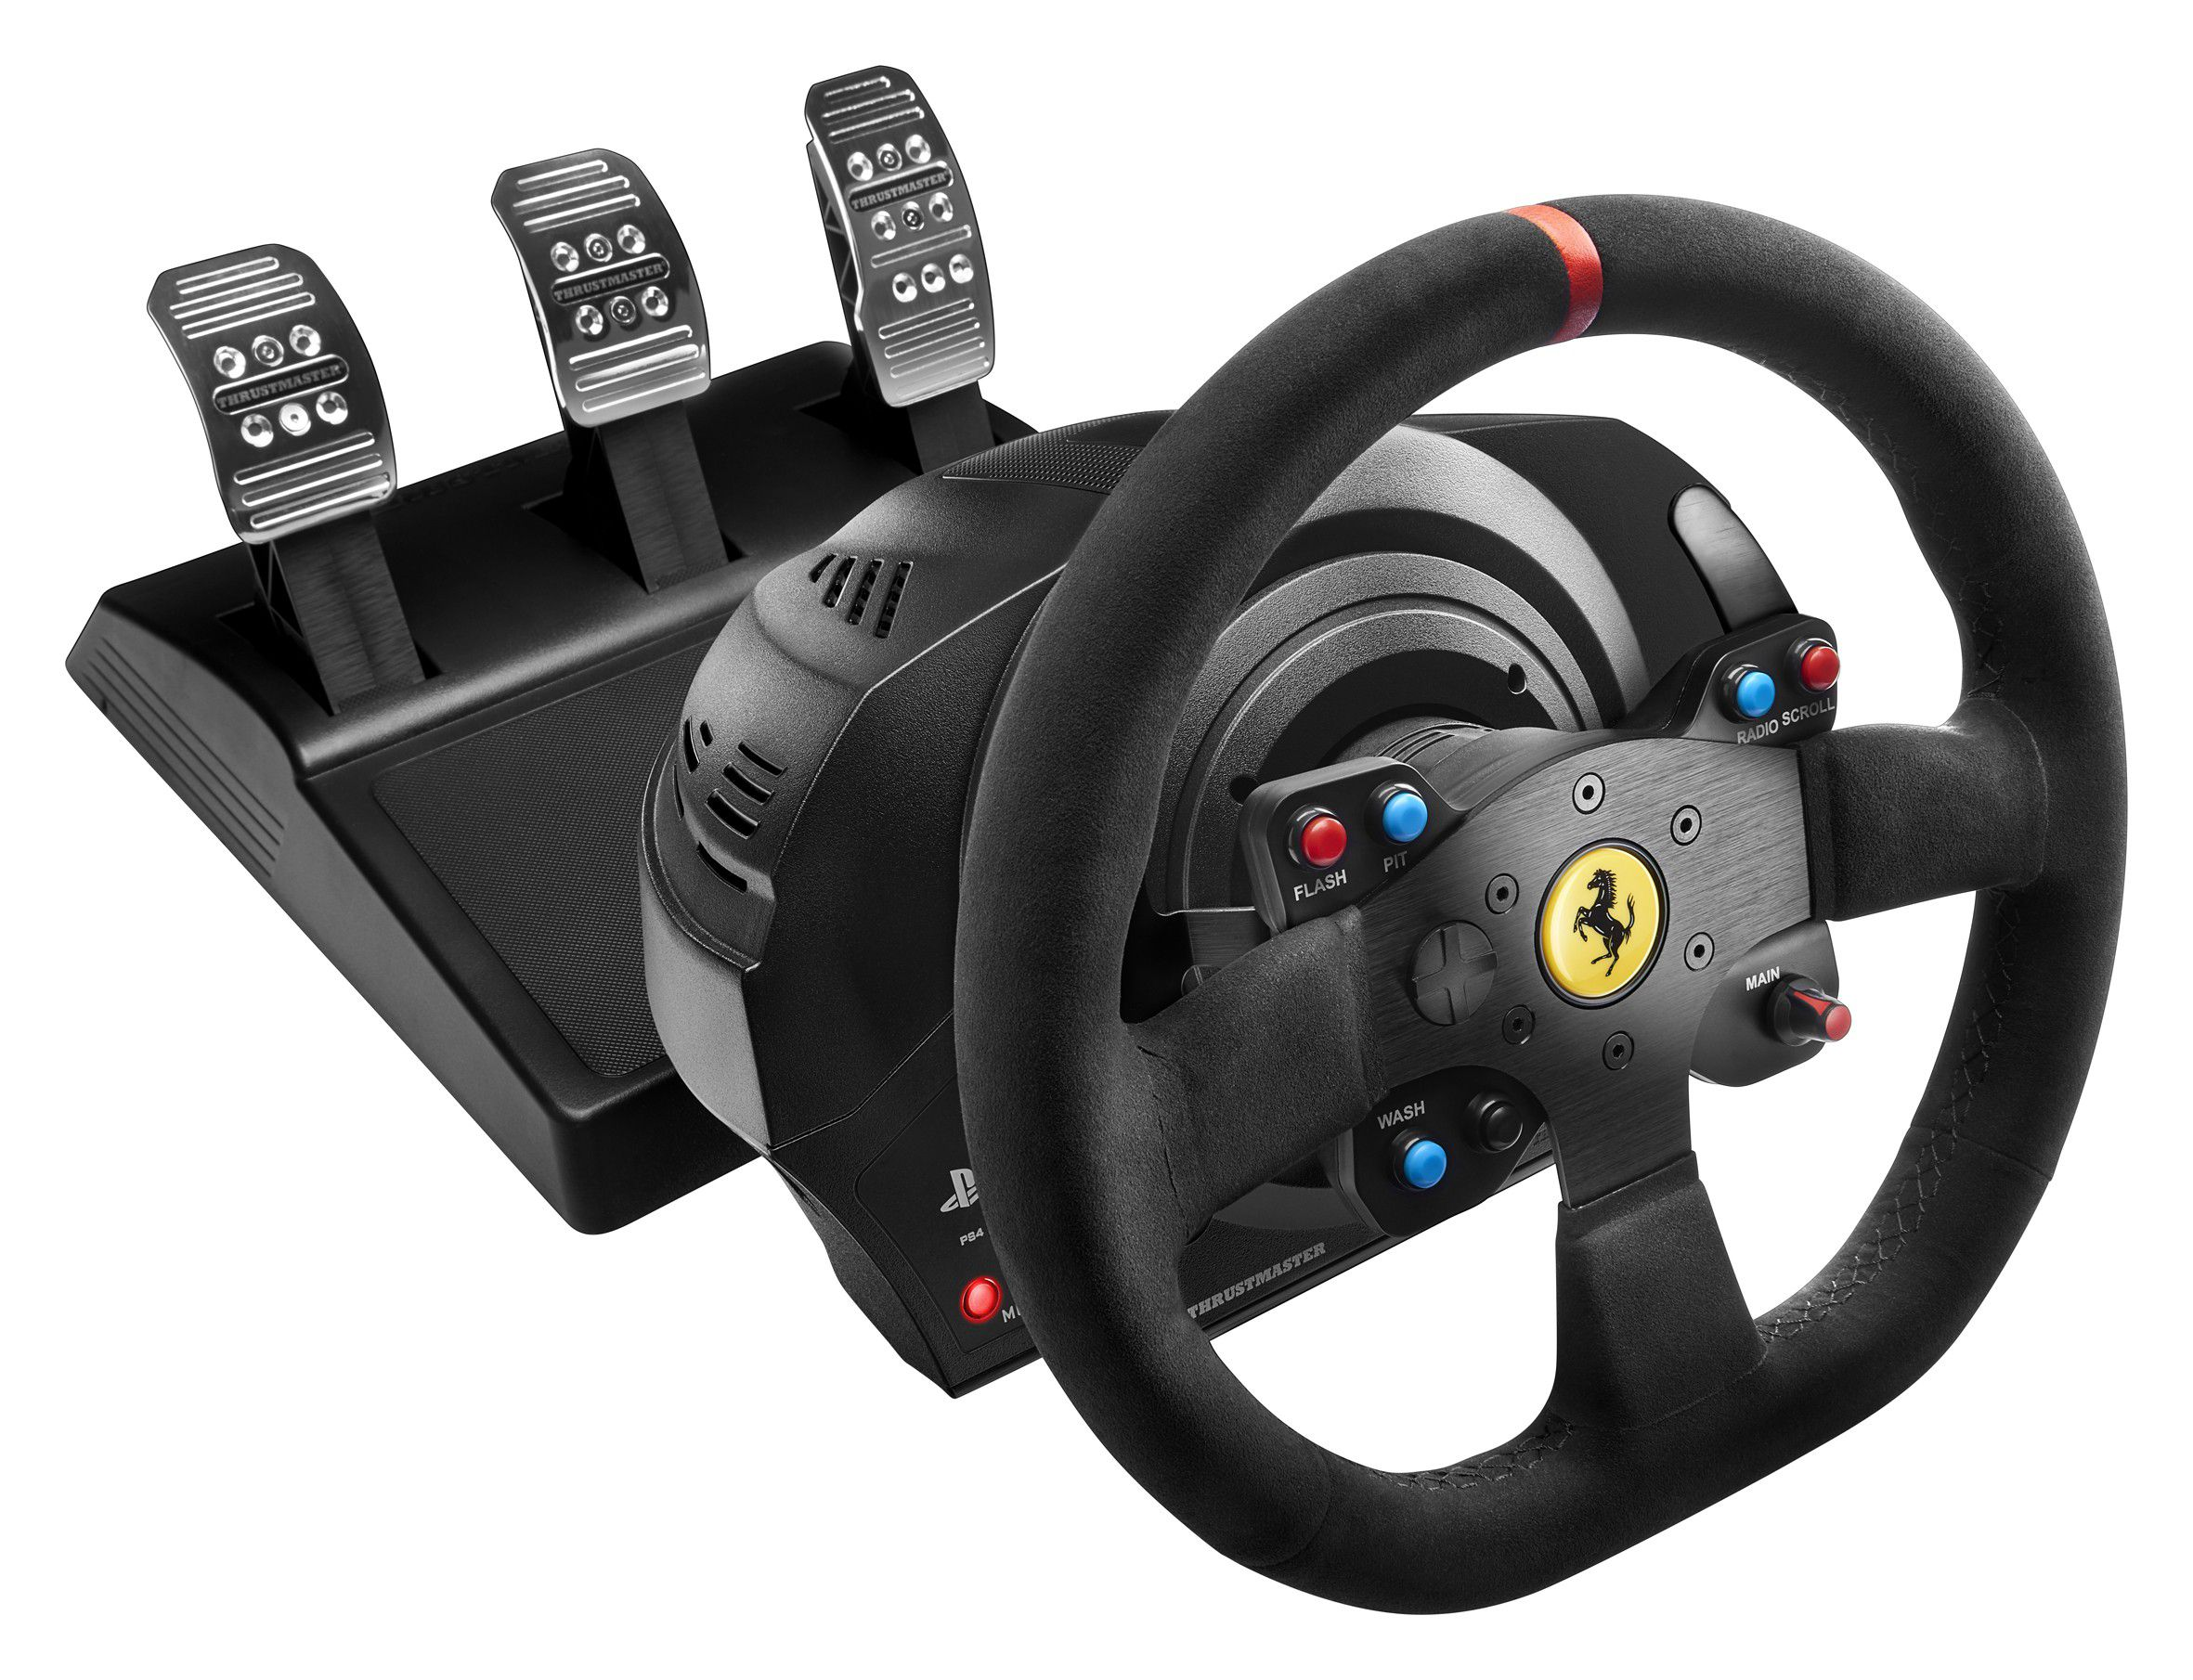 thrustmaster t300 ferrari integral racing wheel alcantara edition test prix et fiche. Black Bedroom Furniture Sets. Home Design Ideas